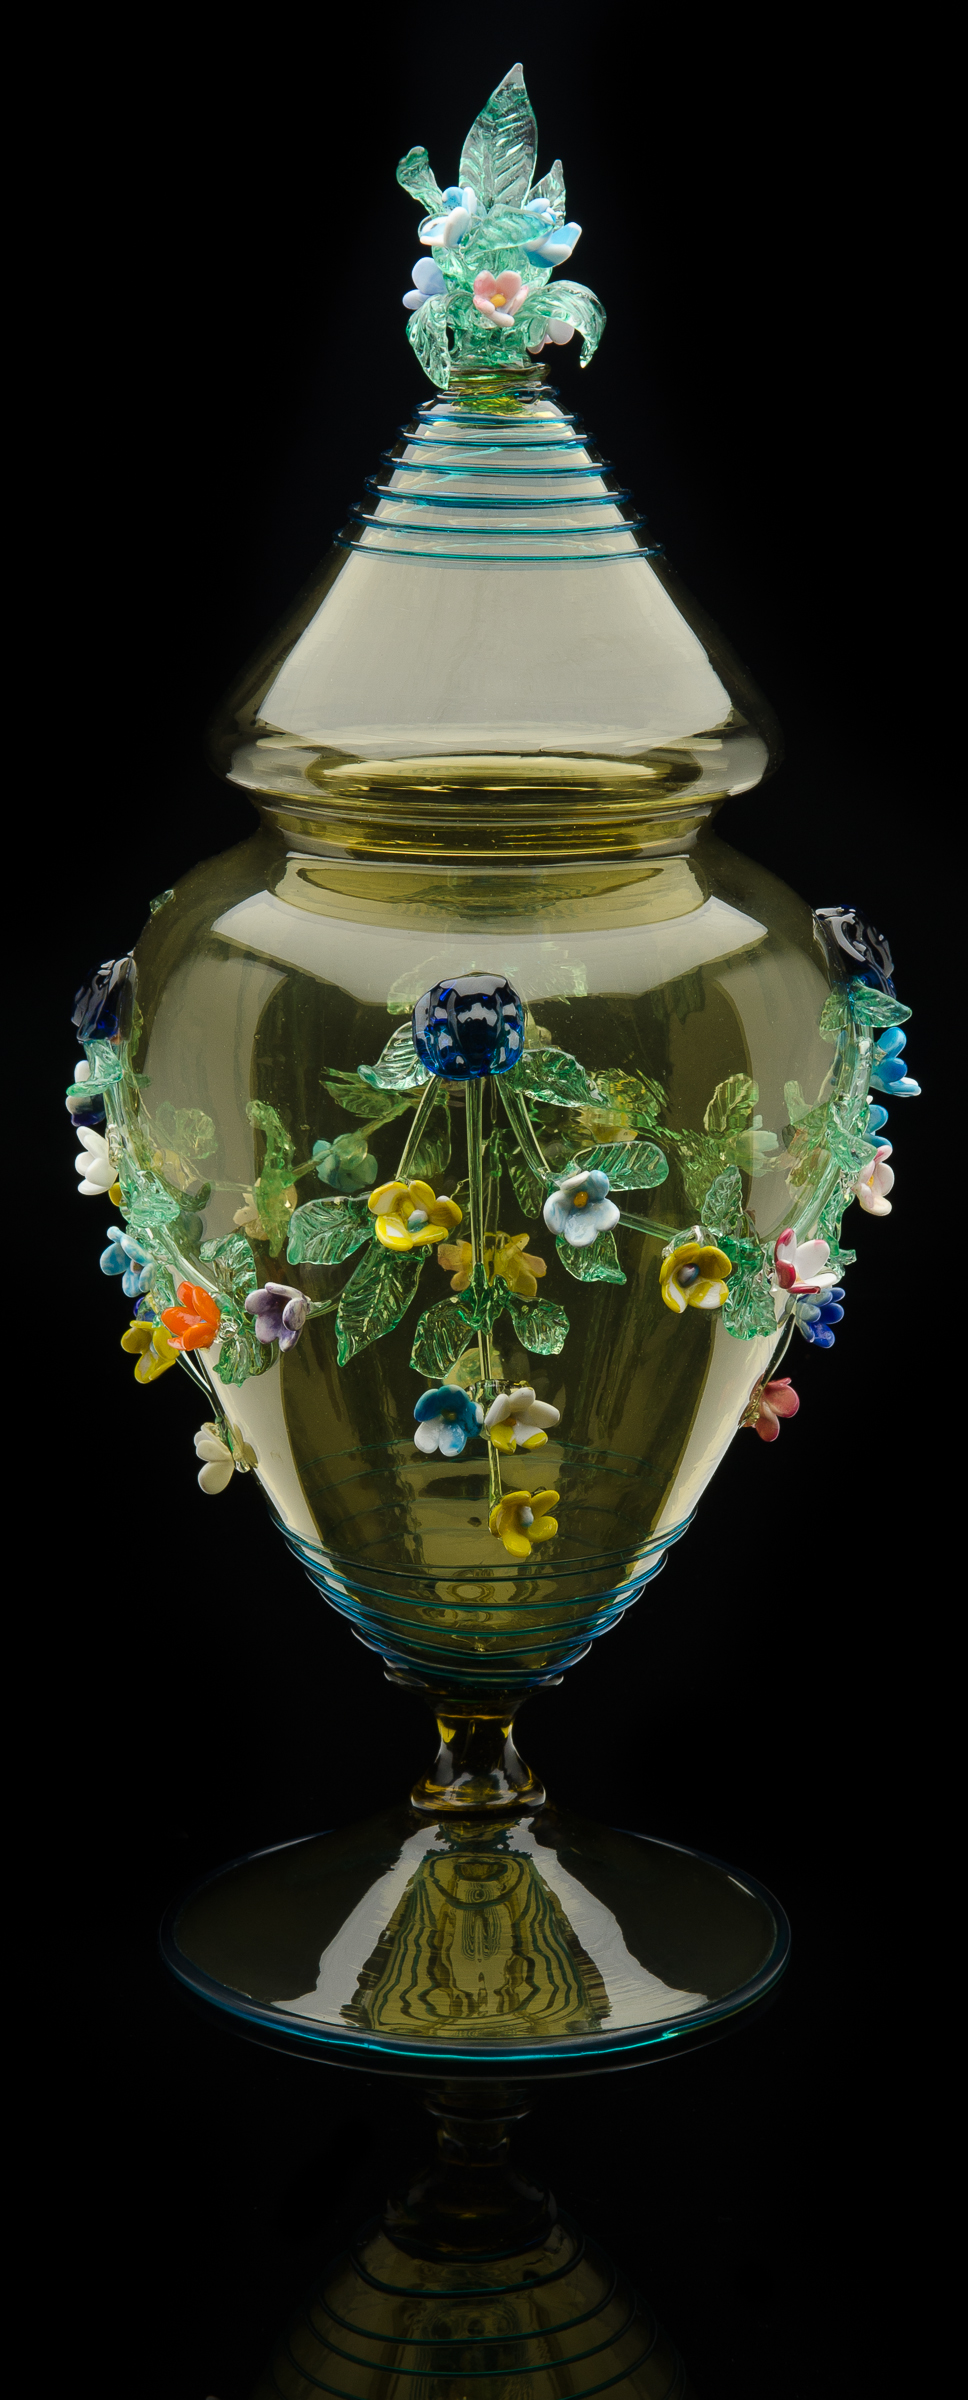 Artisti Barovier,  Green Smoke Lidded Urn with Applied Flowers  (circa 1895, glass, 15 inches), VV.295